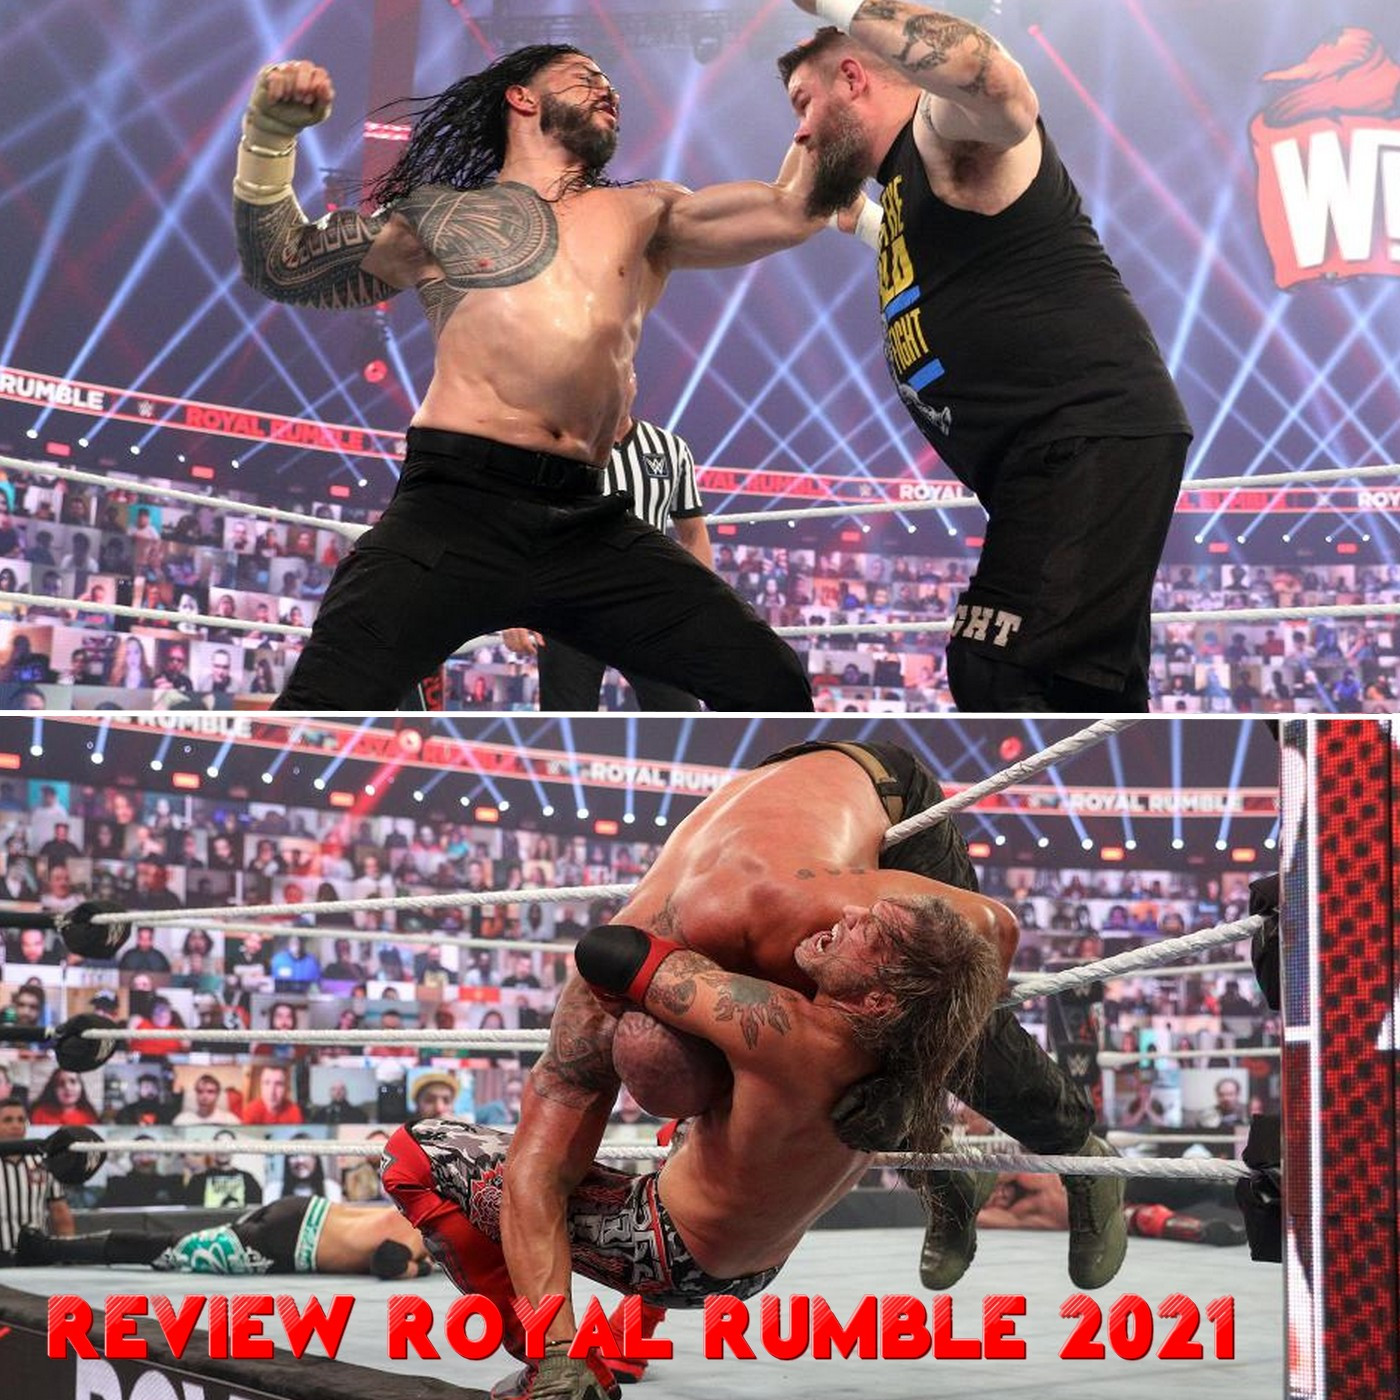 MiniHebdo #7 : Review WWE Royal Rumble 2021, Victoire méritée d'Edge ?